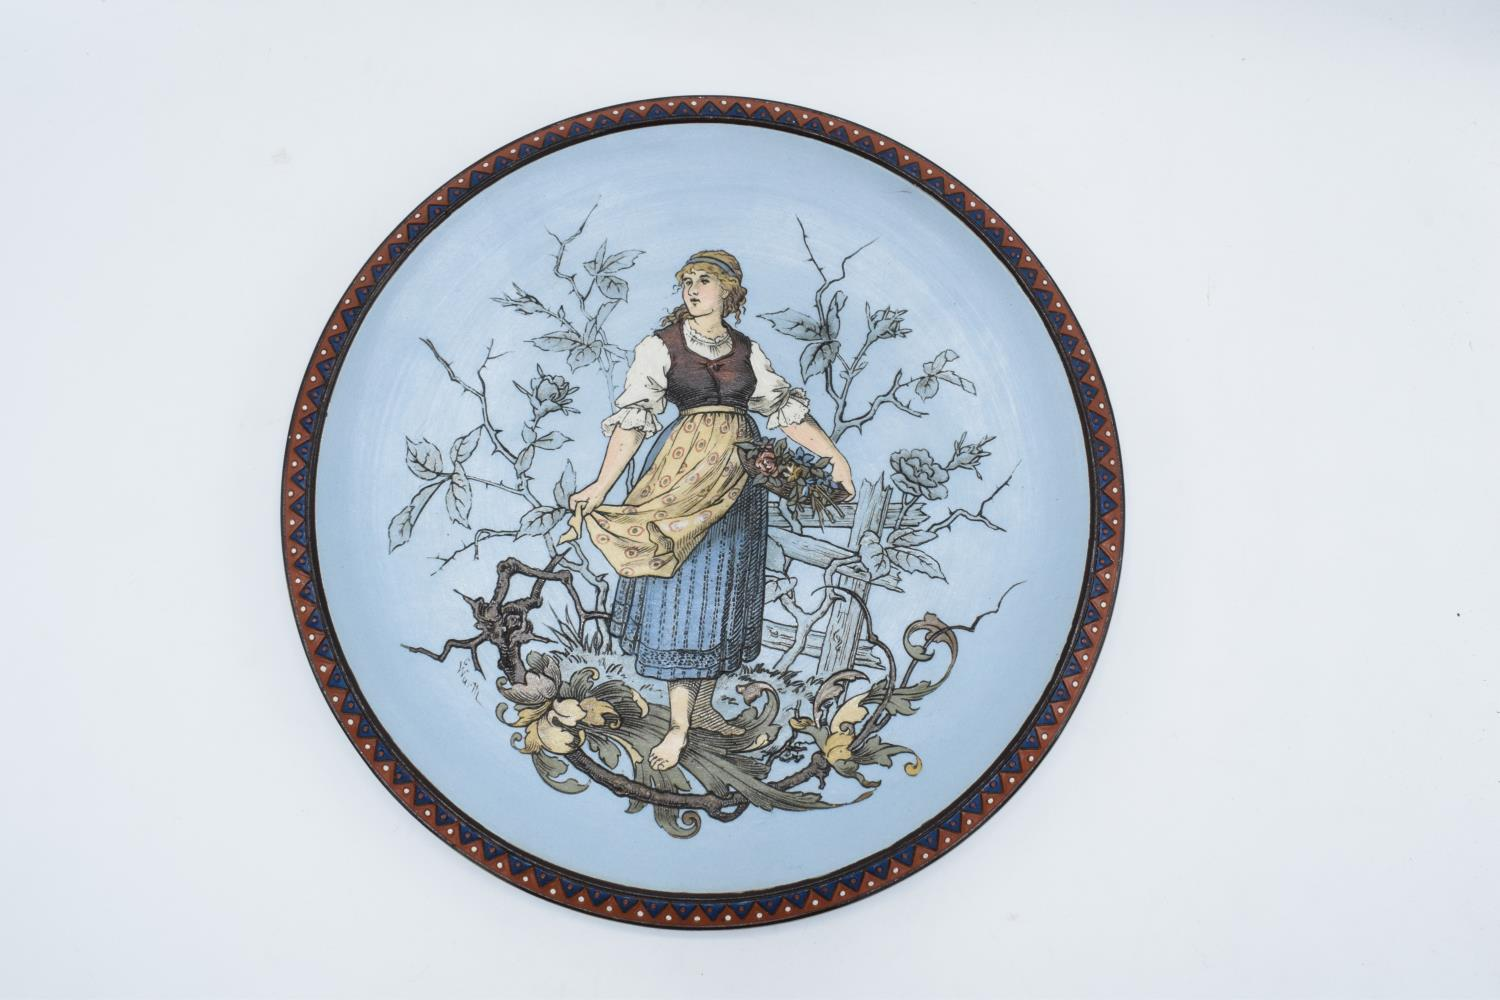 Late 19th century Mettlach (Villeroy and Boch) wall charger after C. Warth decorated with a lady